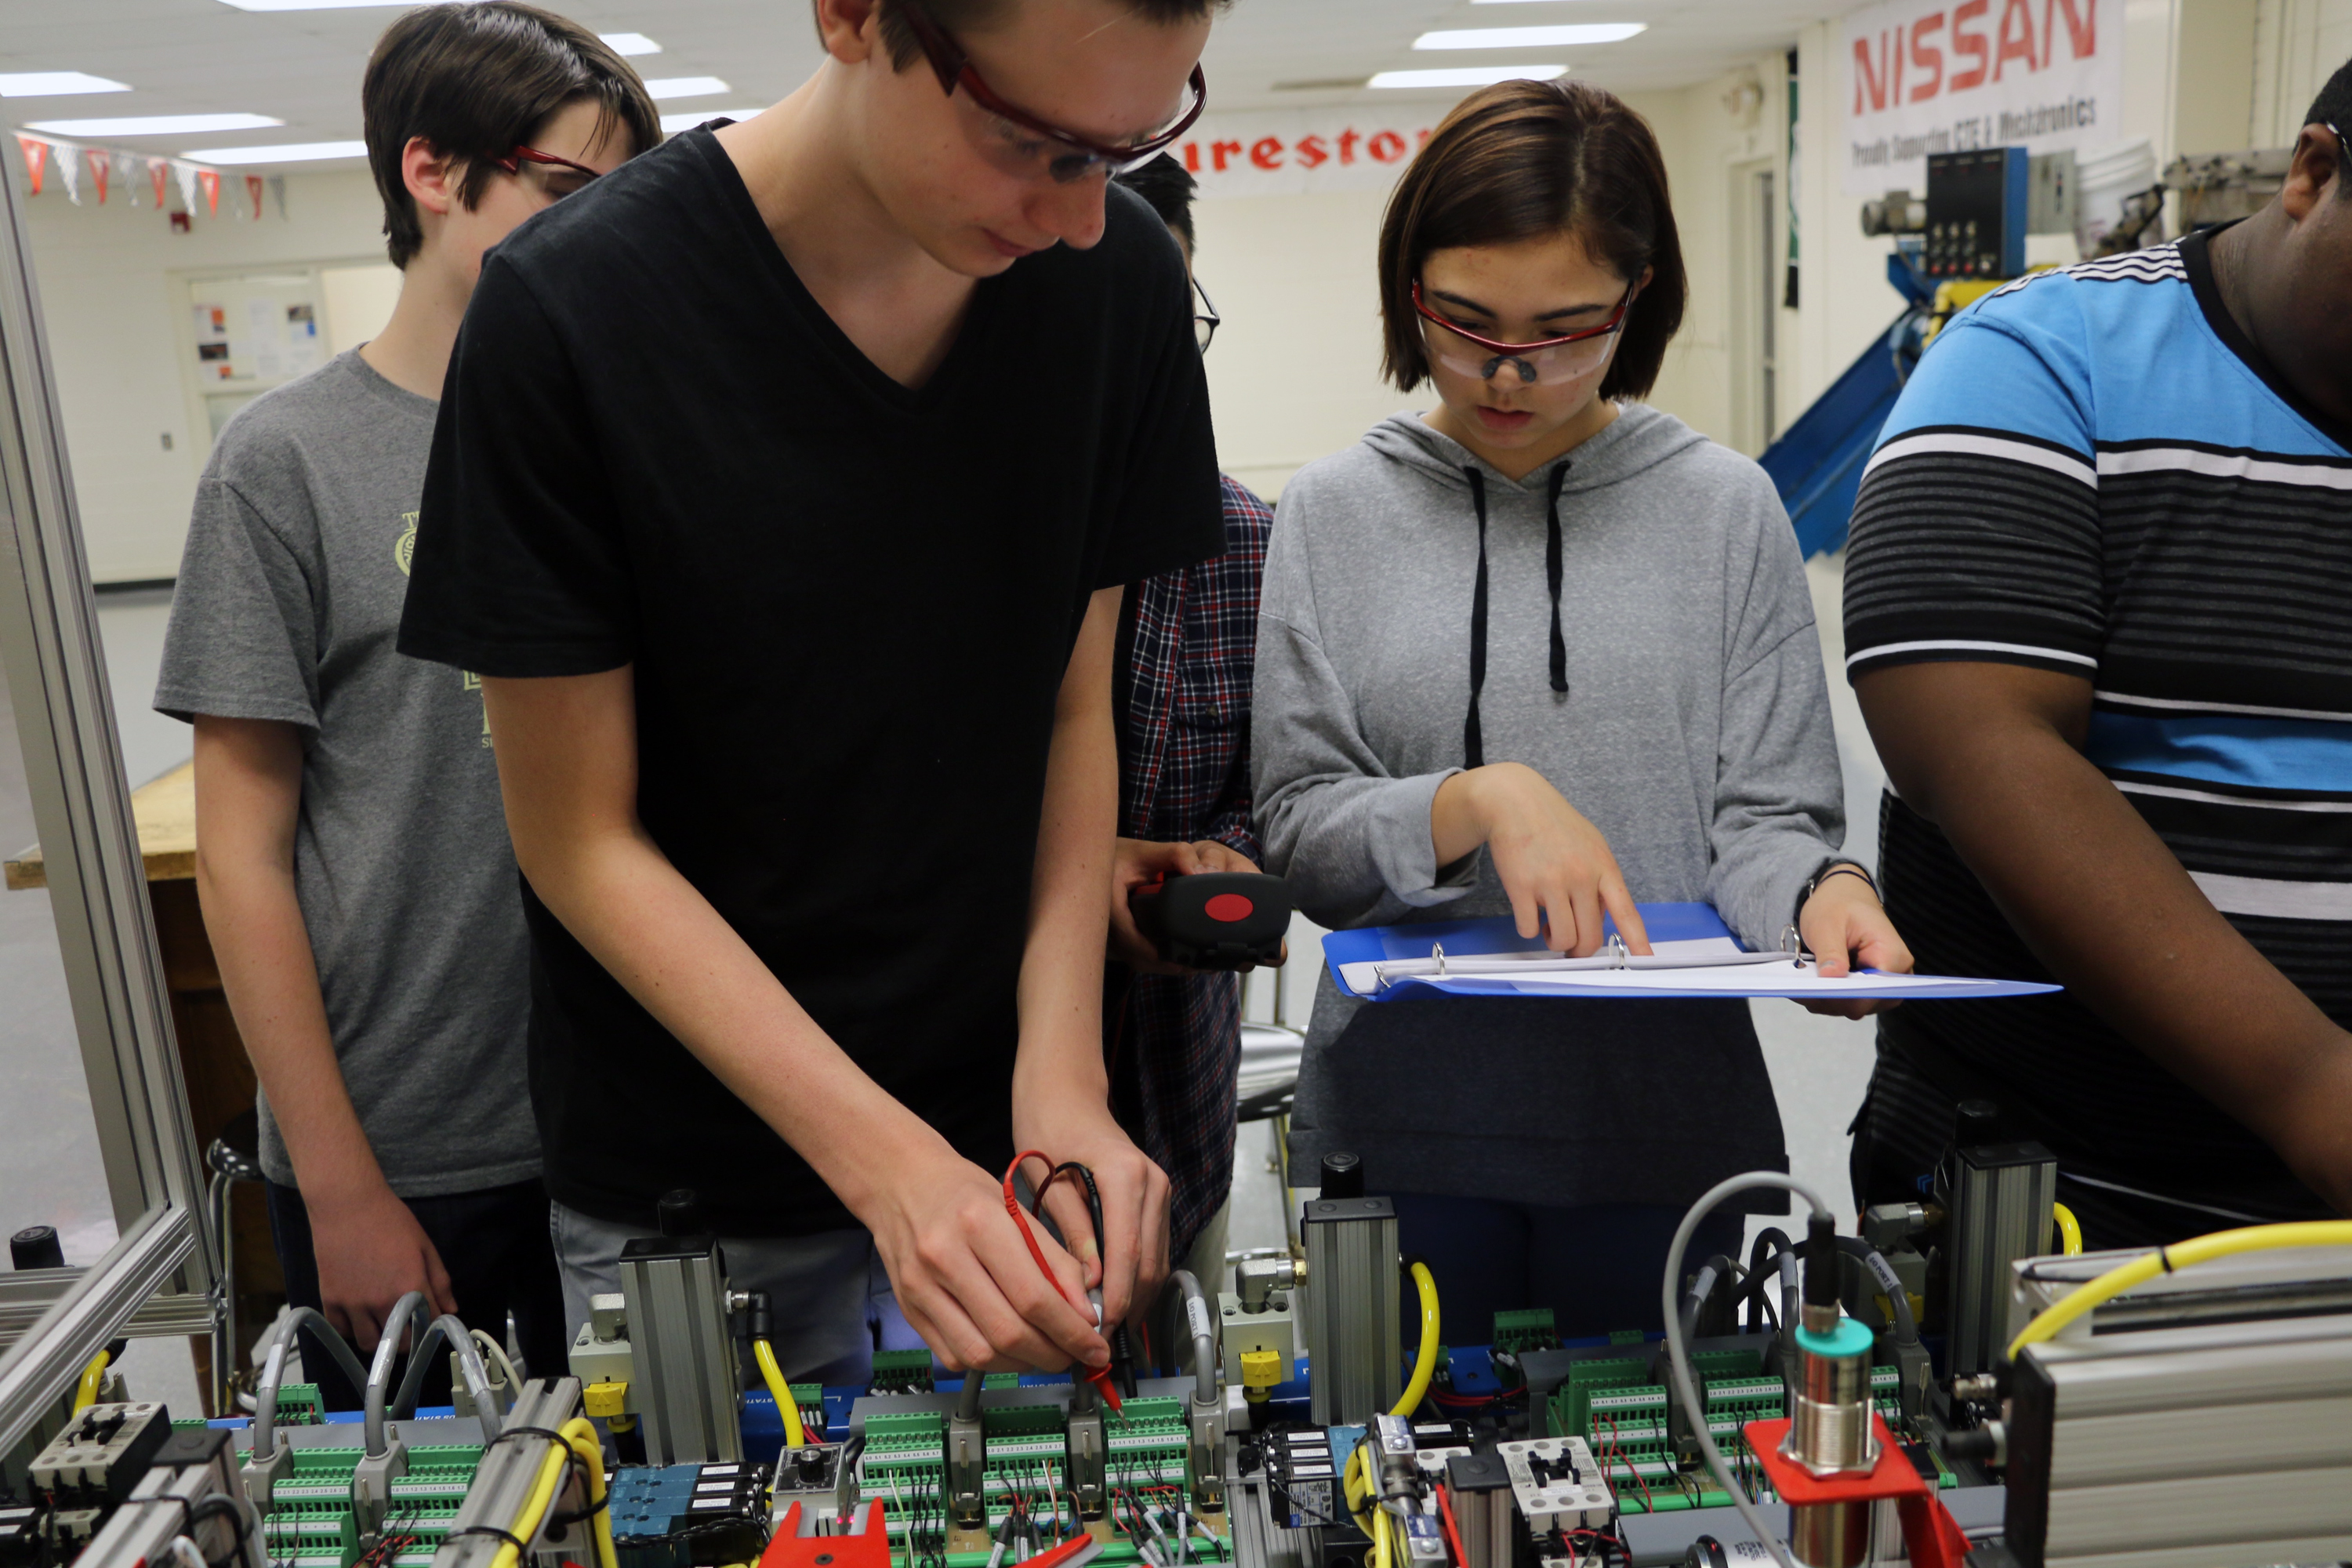 Oakland's diverse student body, International Baccalaureate program, Mechatronics and other educational initiatives represent 'microcosm of society'